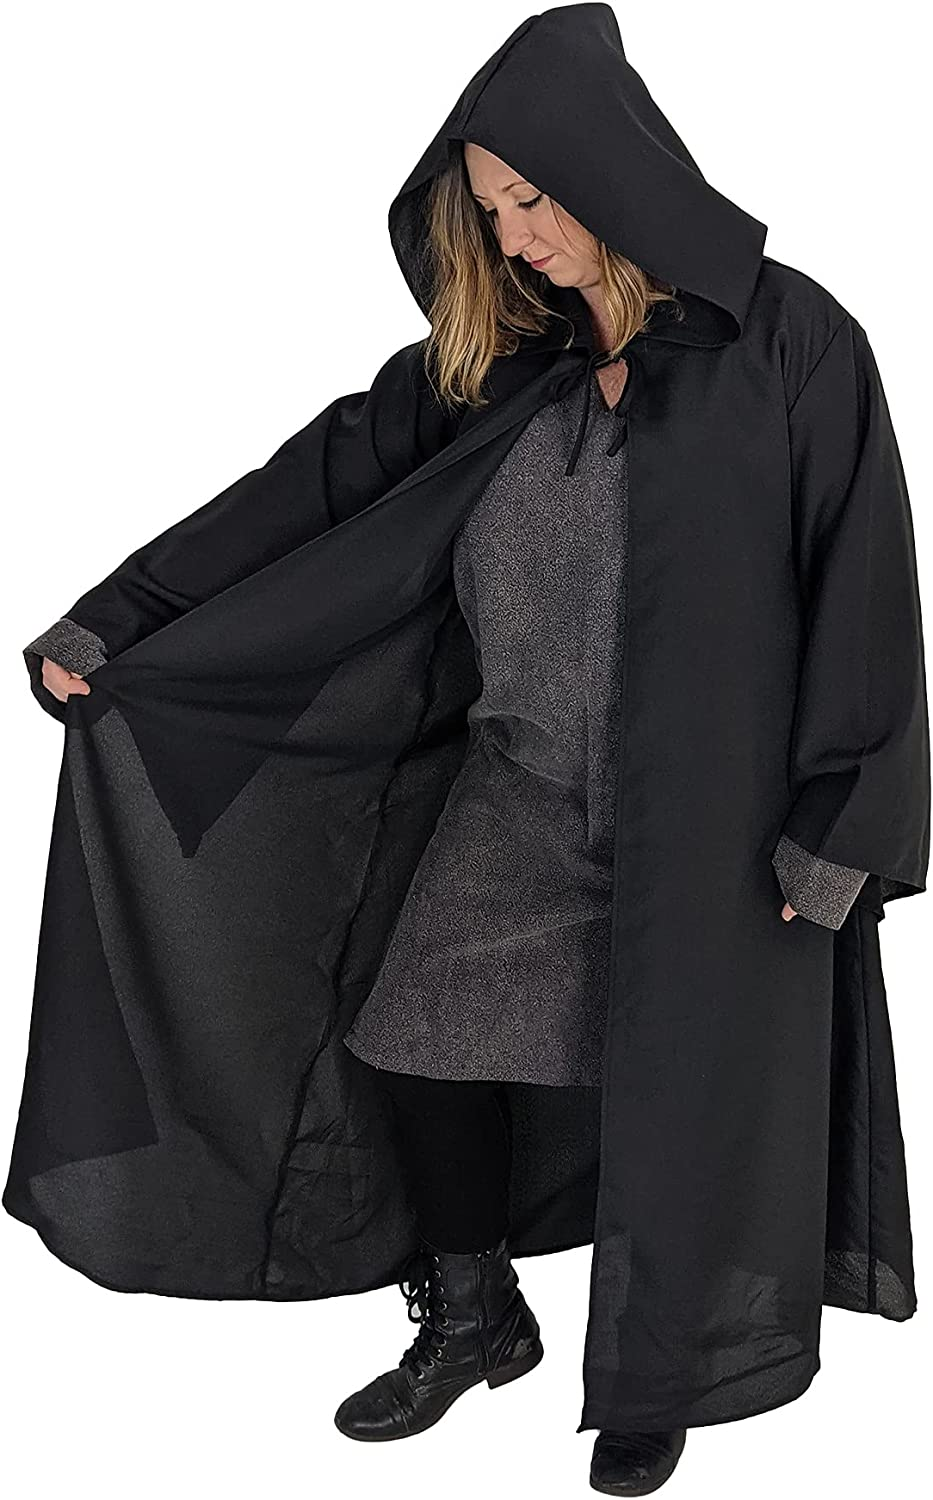 Ranking TOP19 Everfan Adult Hooded Robe with Sales for sale Med Sleeves Wizard Monk Jedi